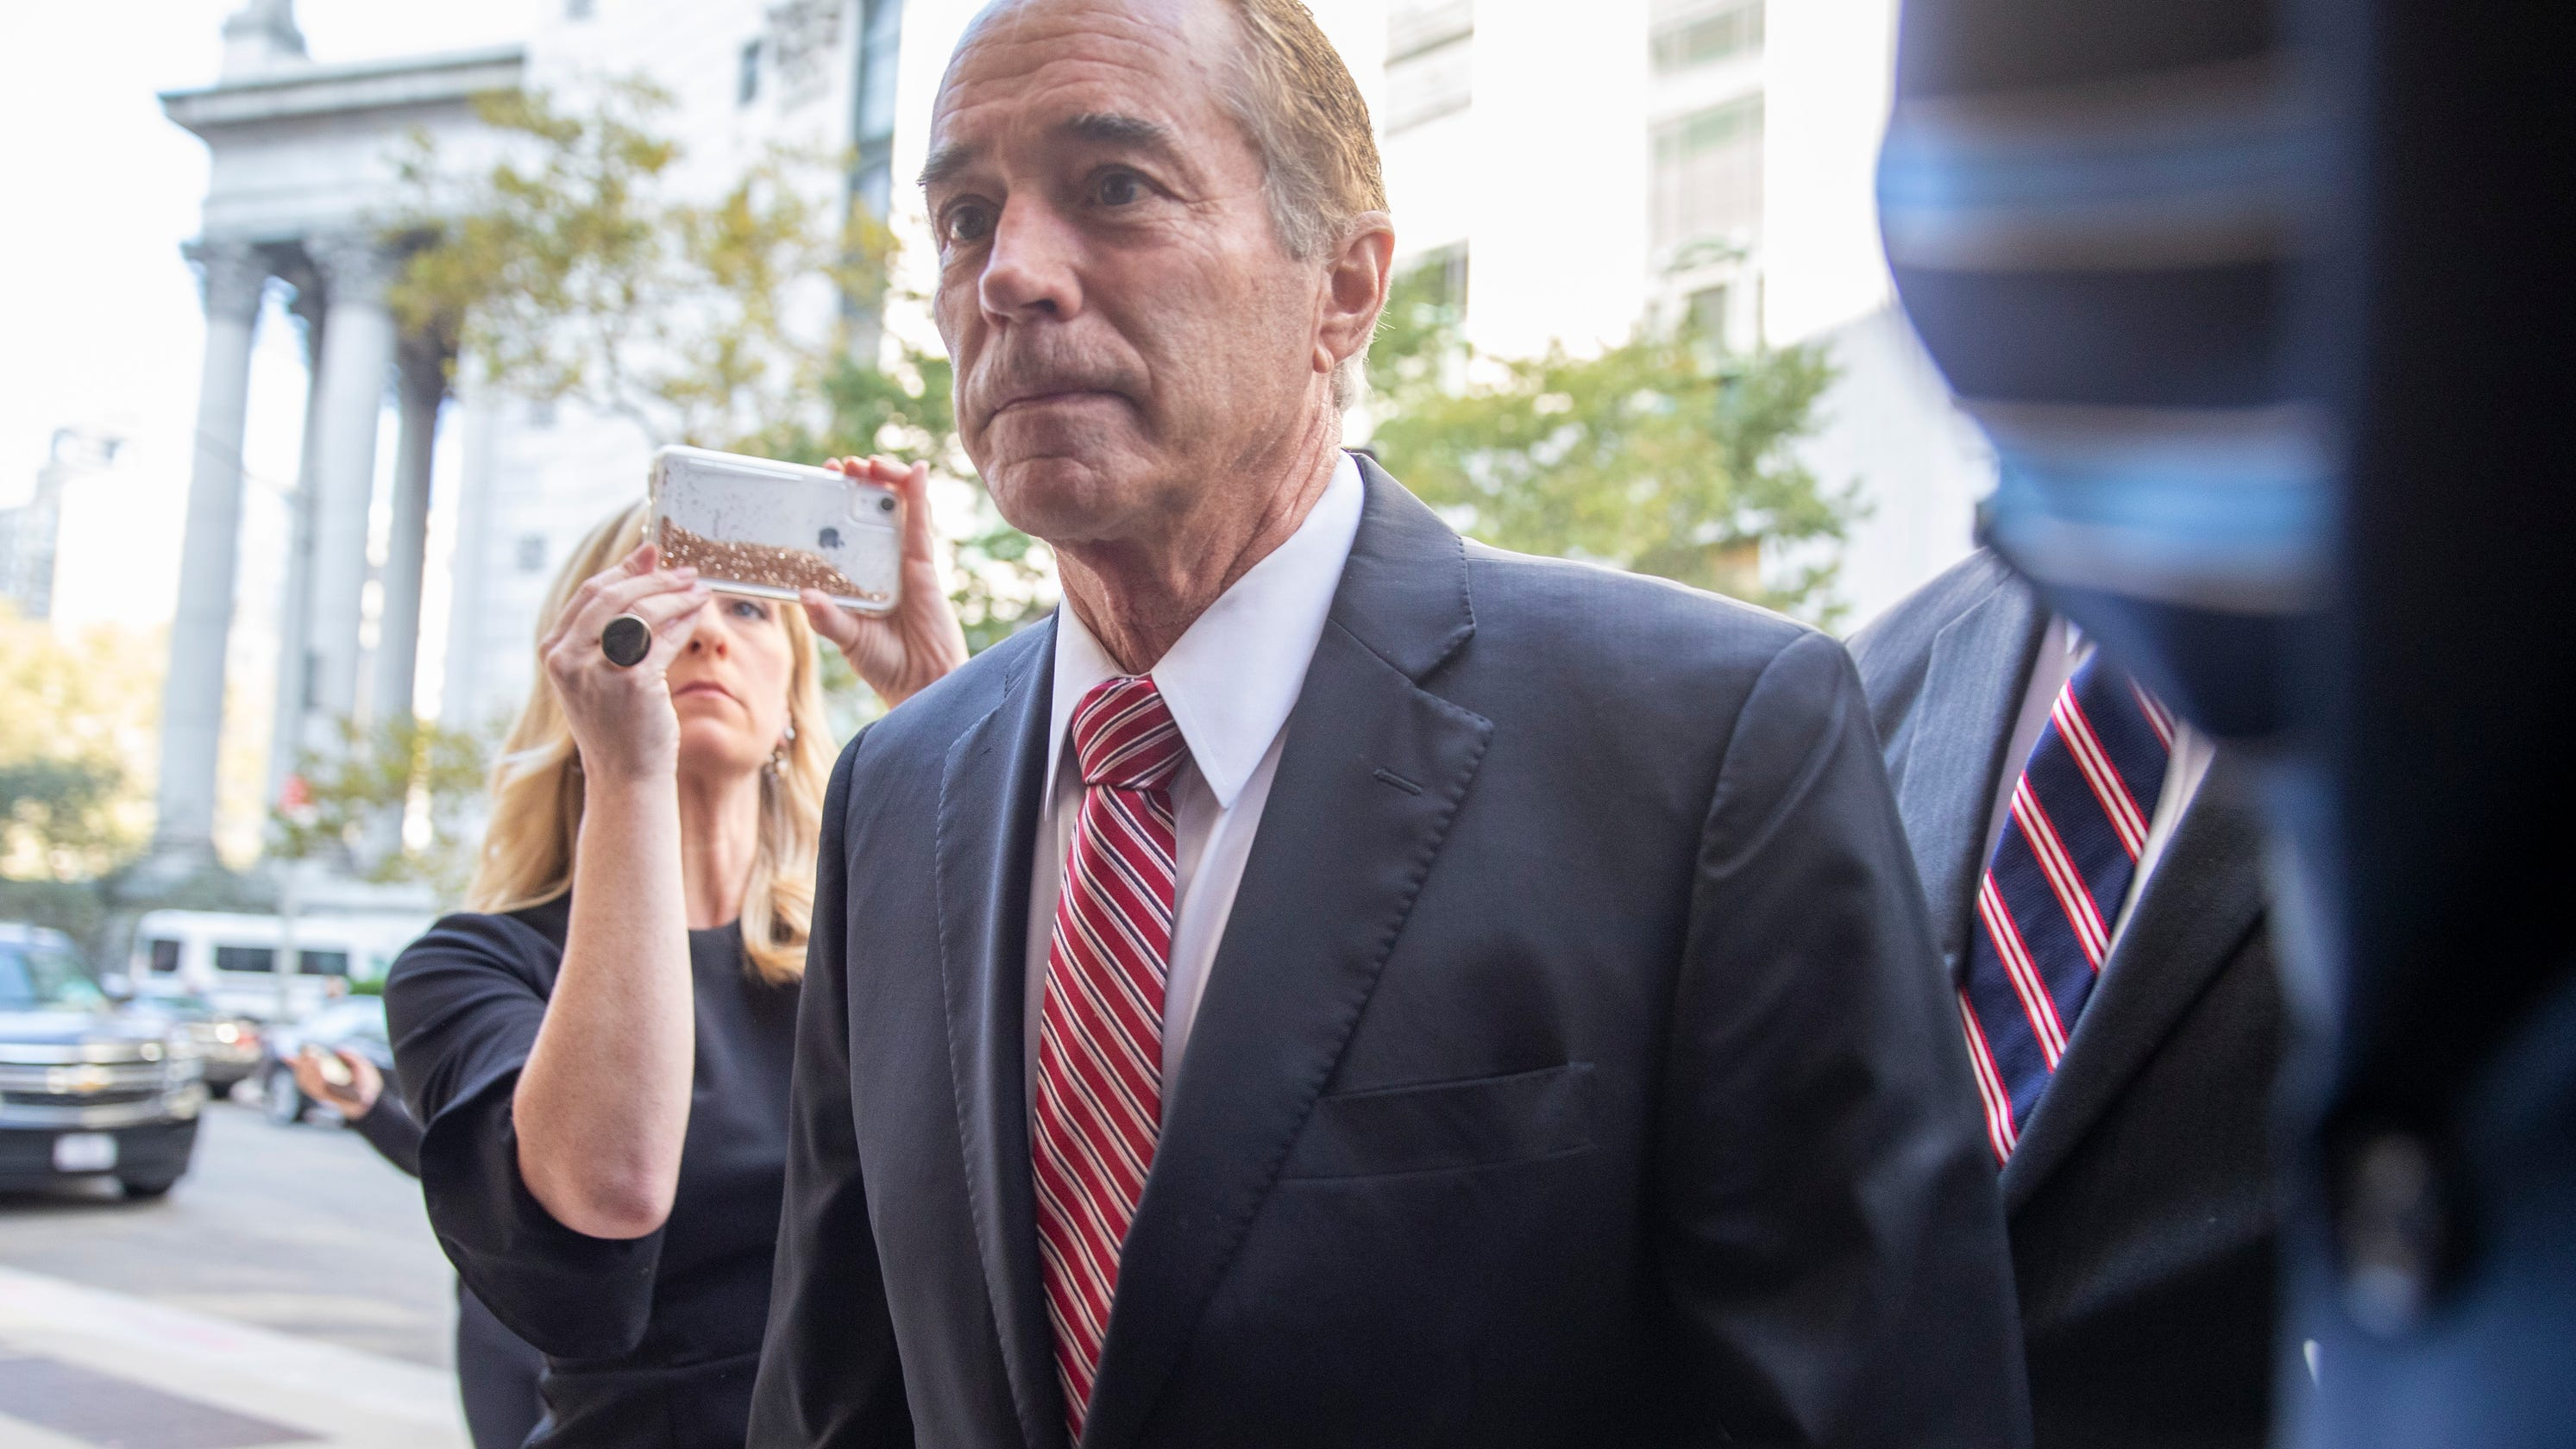 What kind of sentence could former Representative Chris Collins receive?